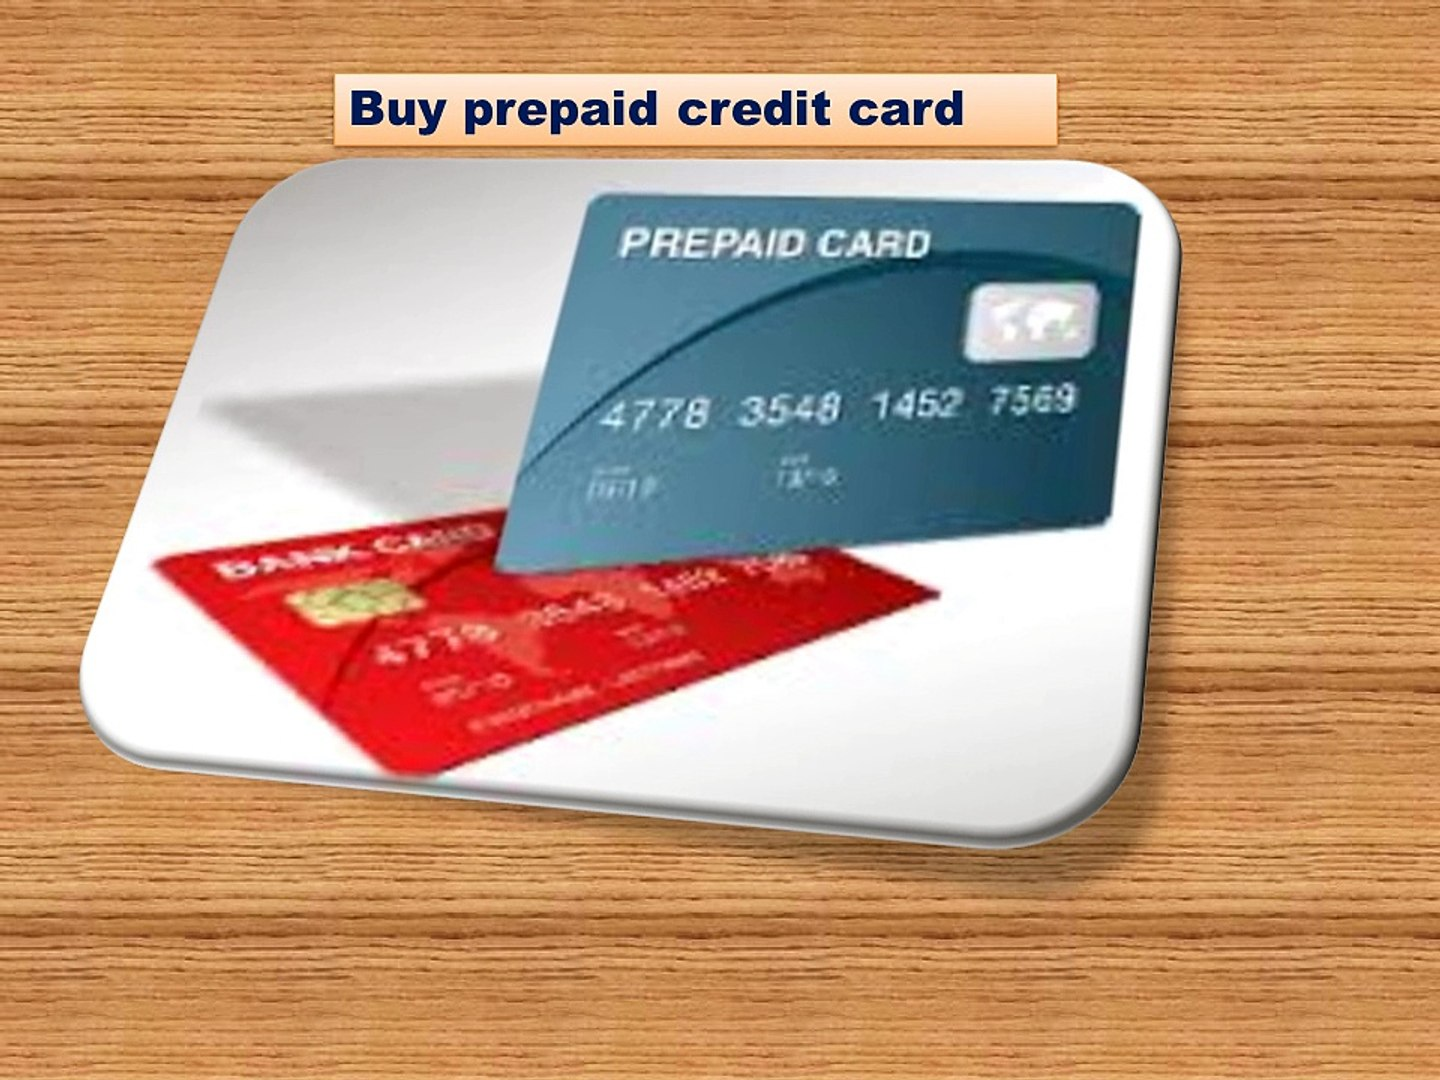 Prepaid Credit Card >> Buy Prepaid Credit Card At Card Dna